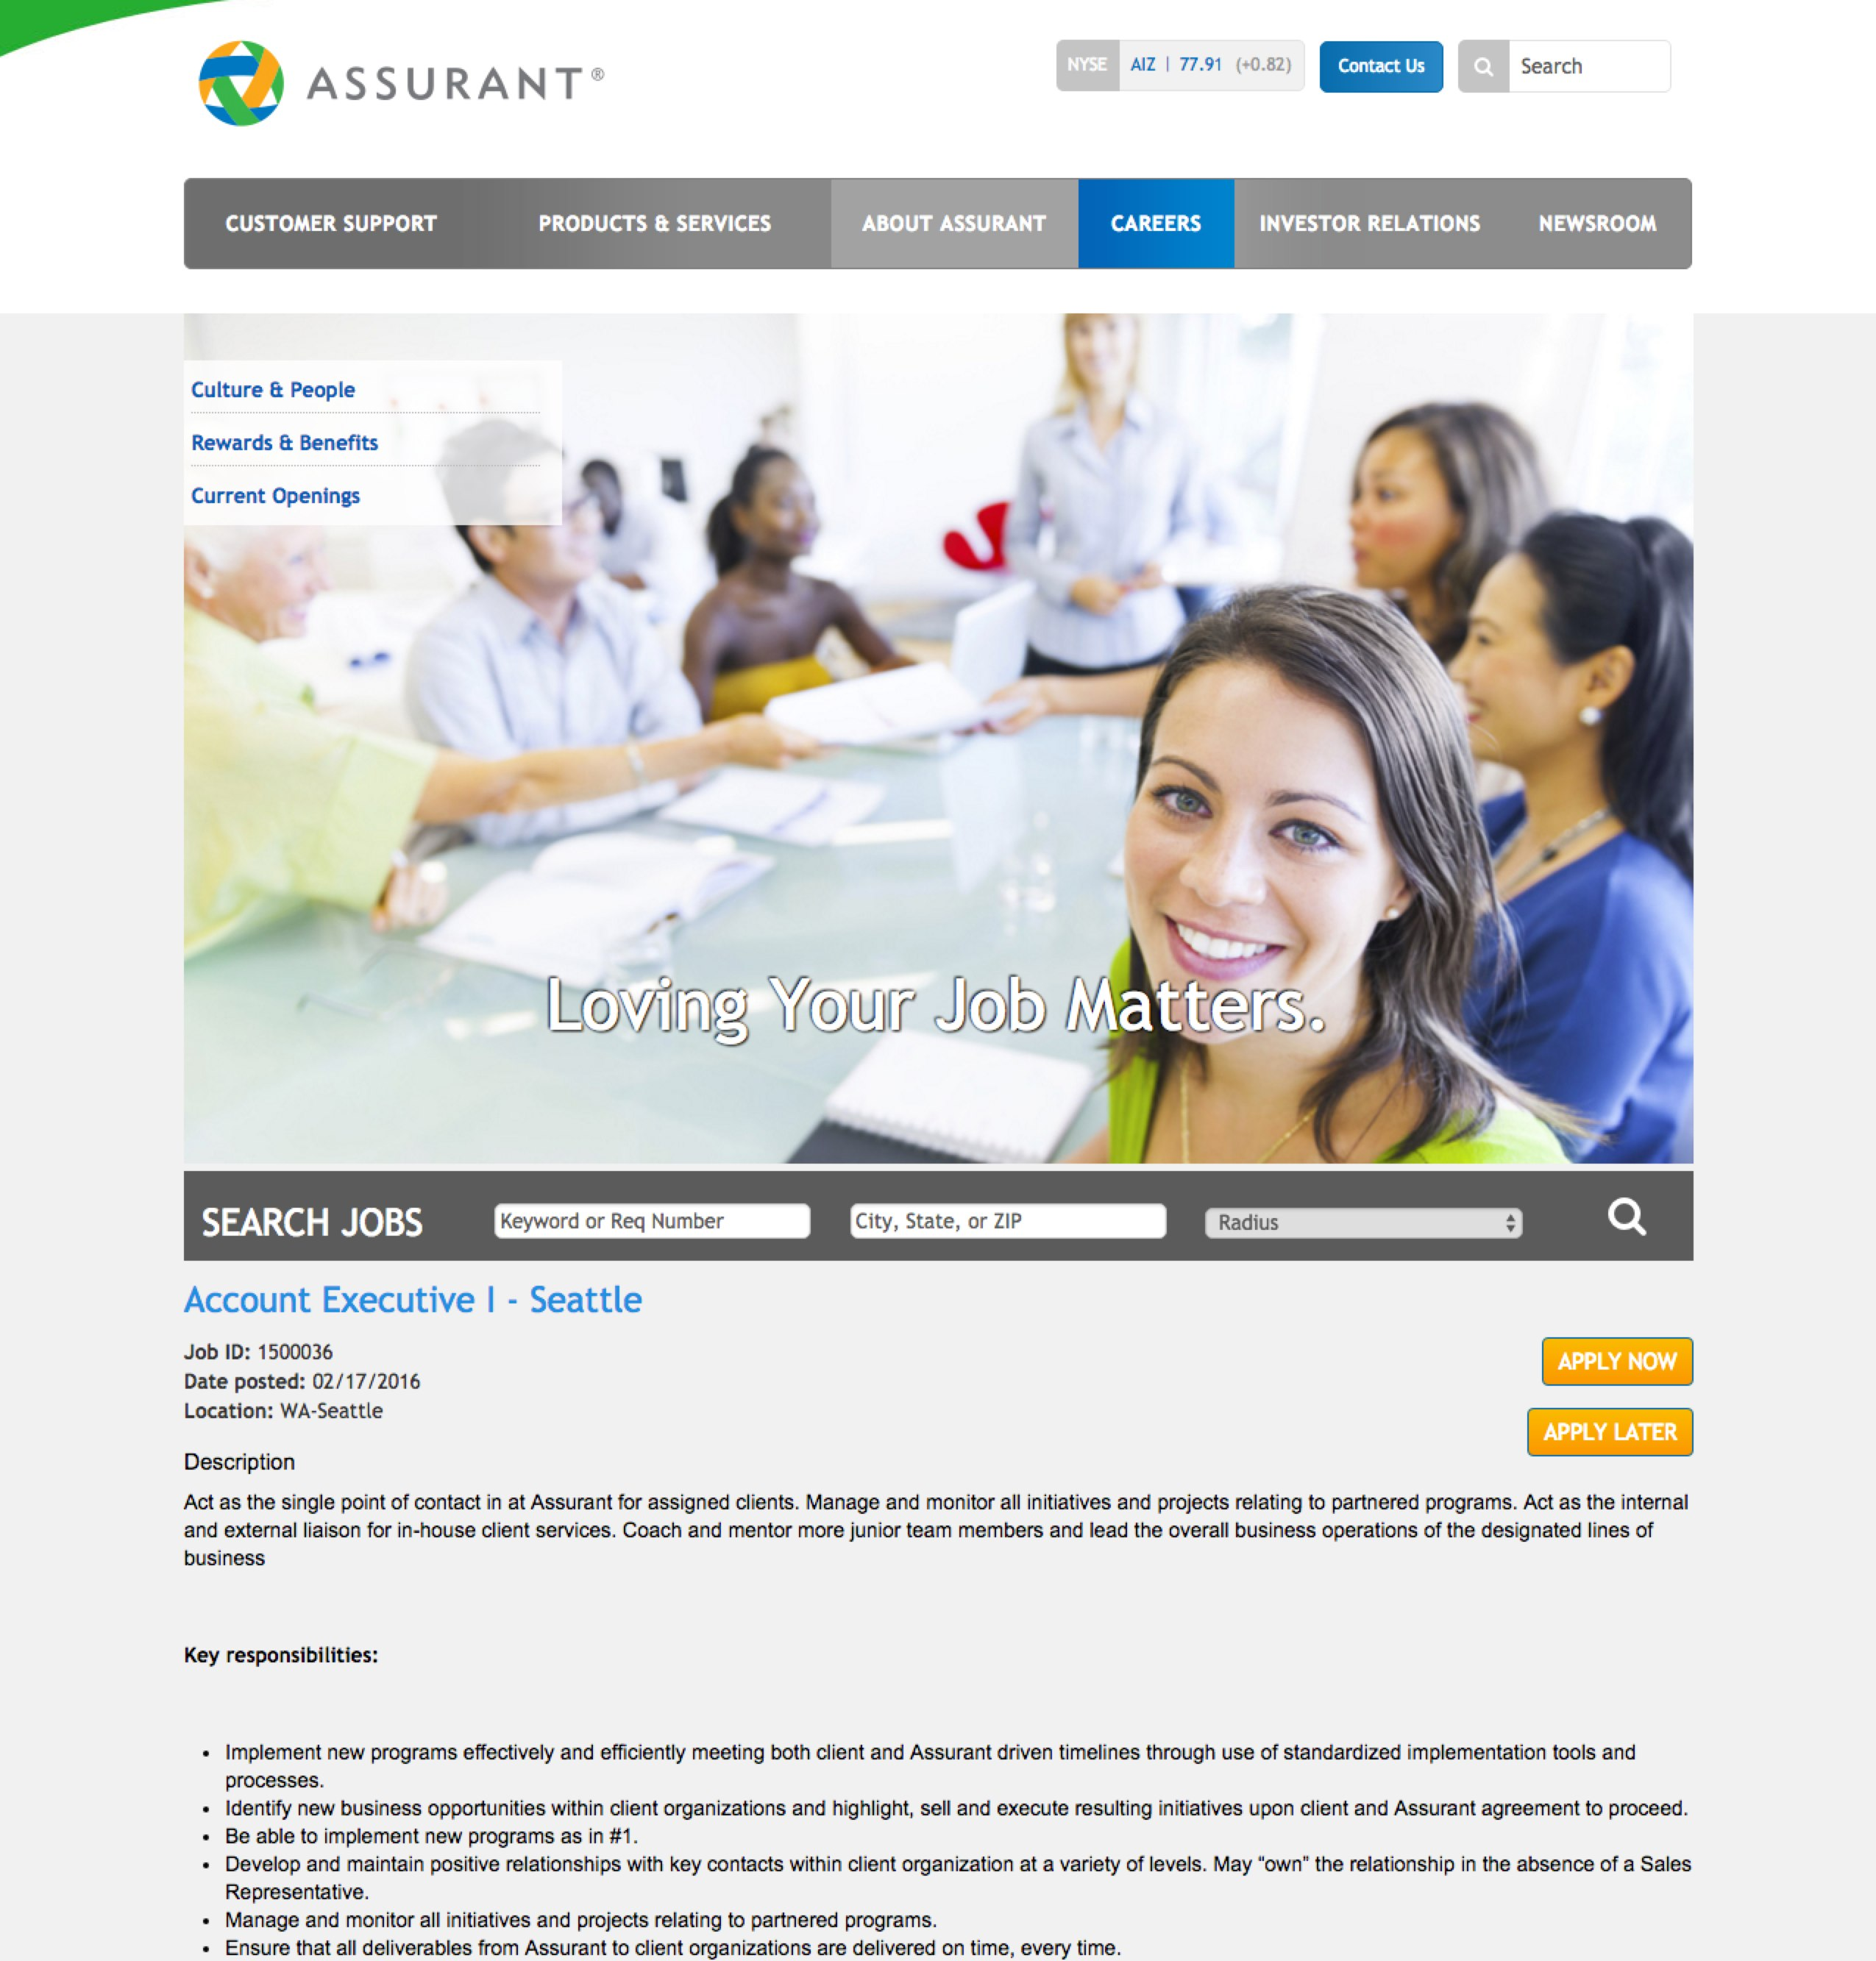 Sample Job Description 1 by Assurant | Talent Brew | Ongig